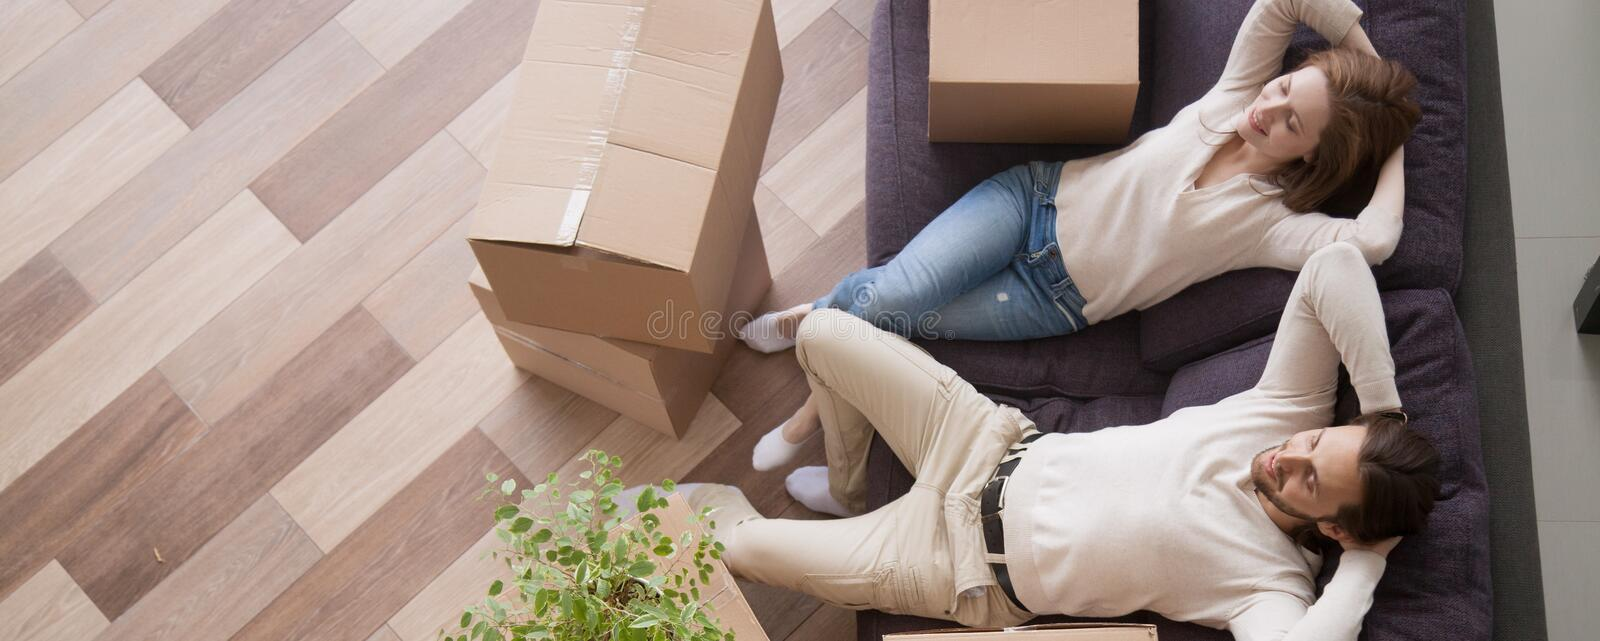 Above view married couple resting on couch at moving day. Horizontal above concept photo married couple at moving day rest relax on couch cardboard boxes on royalty free stock photo